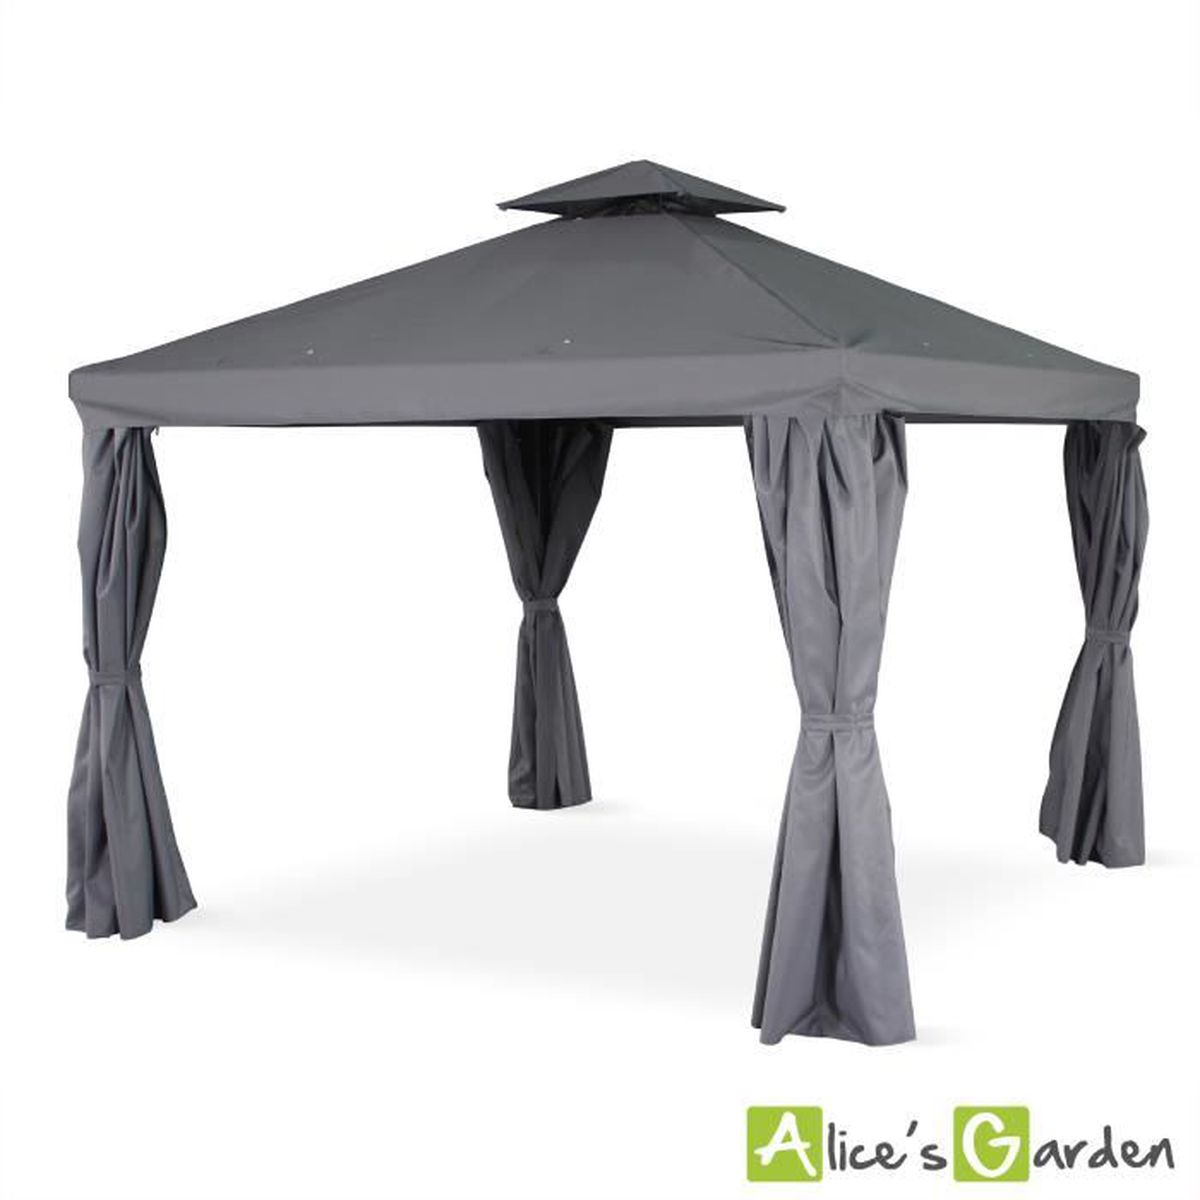 tente de jardin pergola aluminium 3x3m divodorum gris. Black Bedroom Furniture Sets. Home Design Ideas